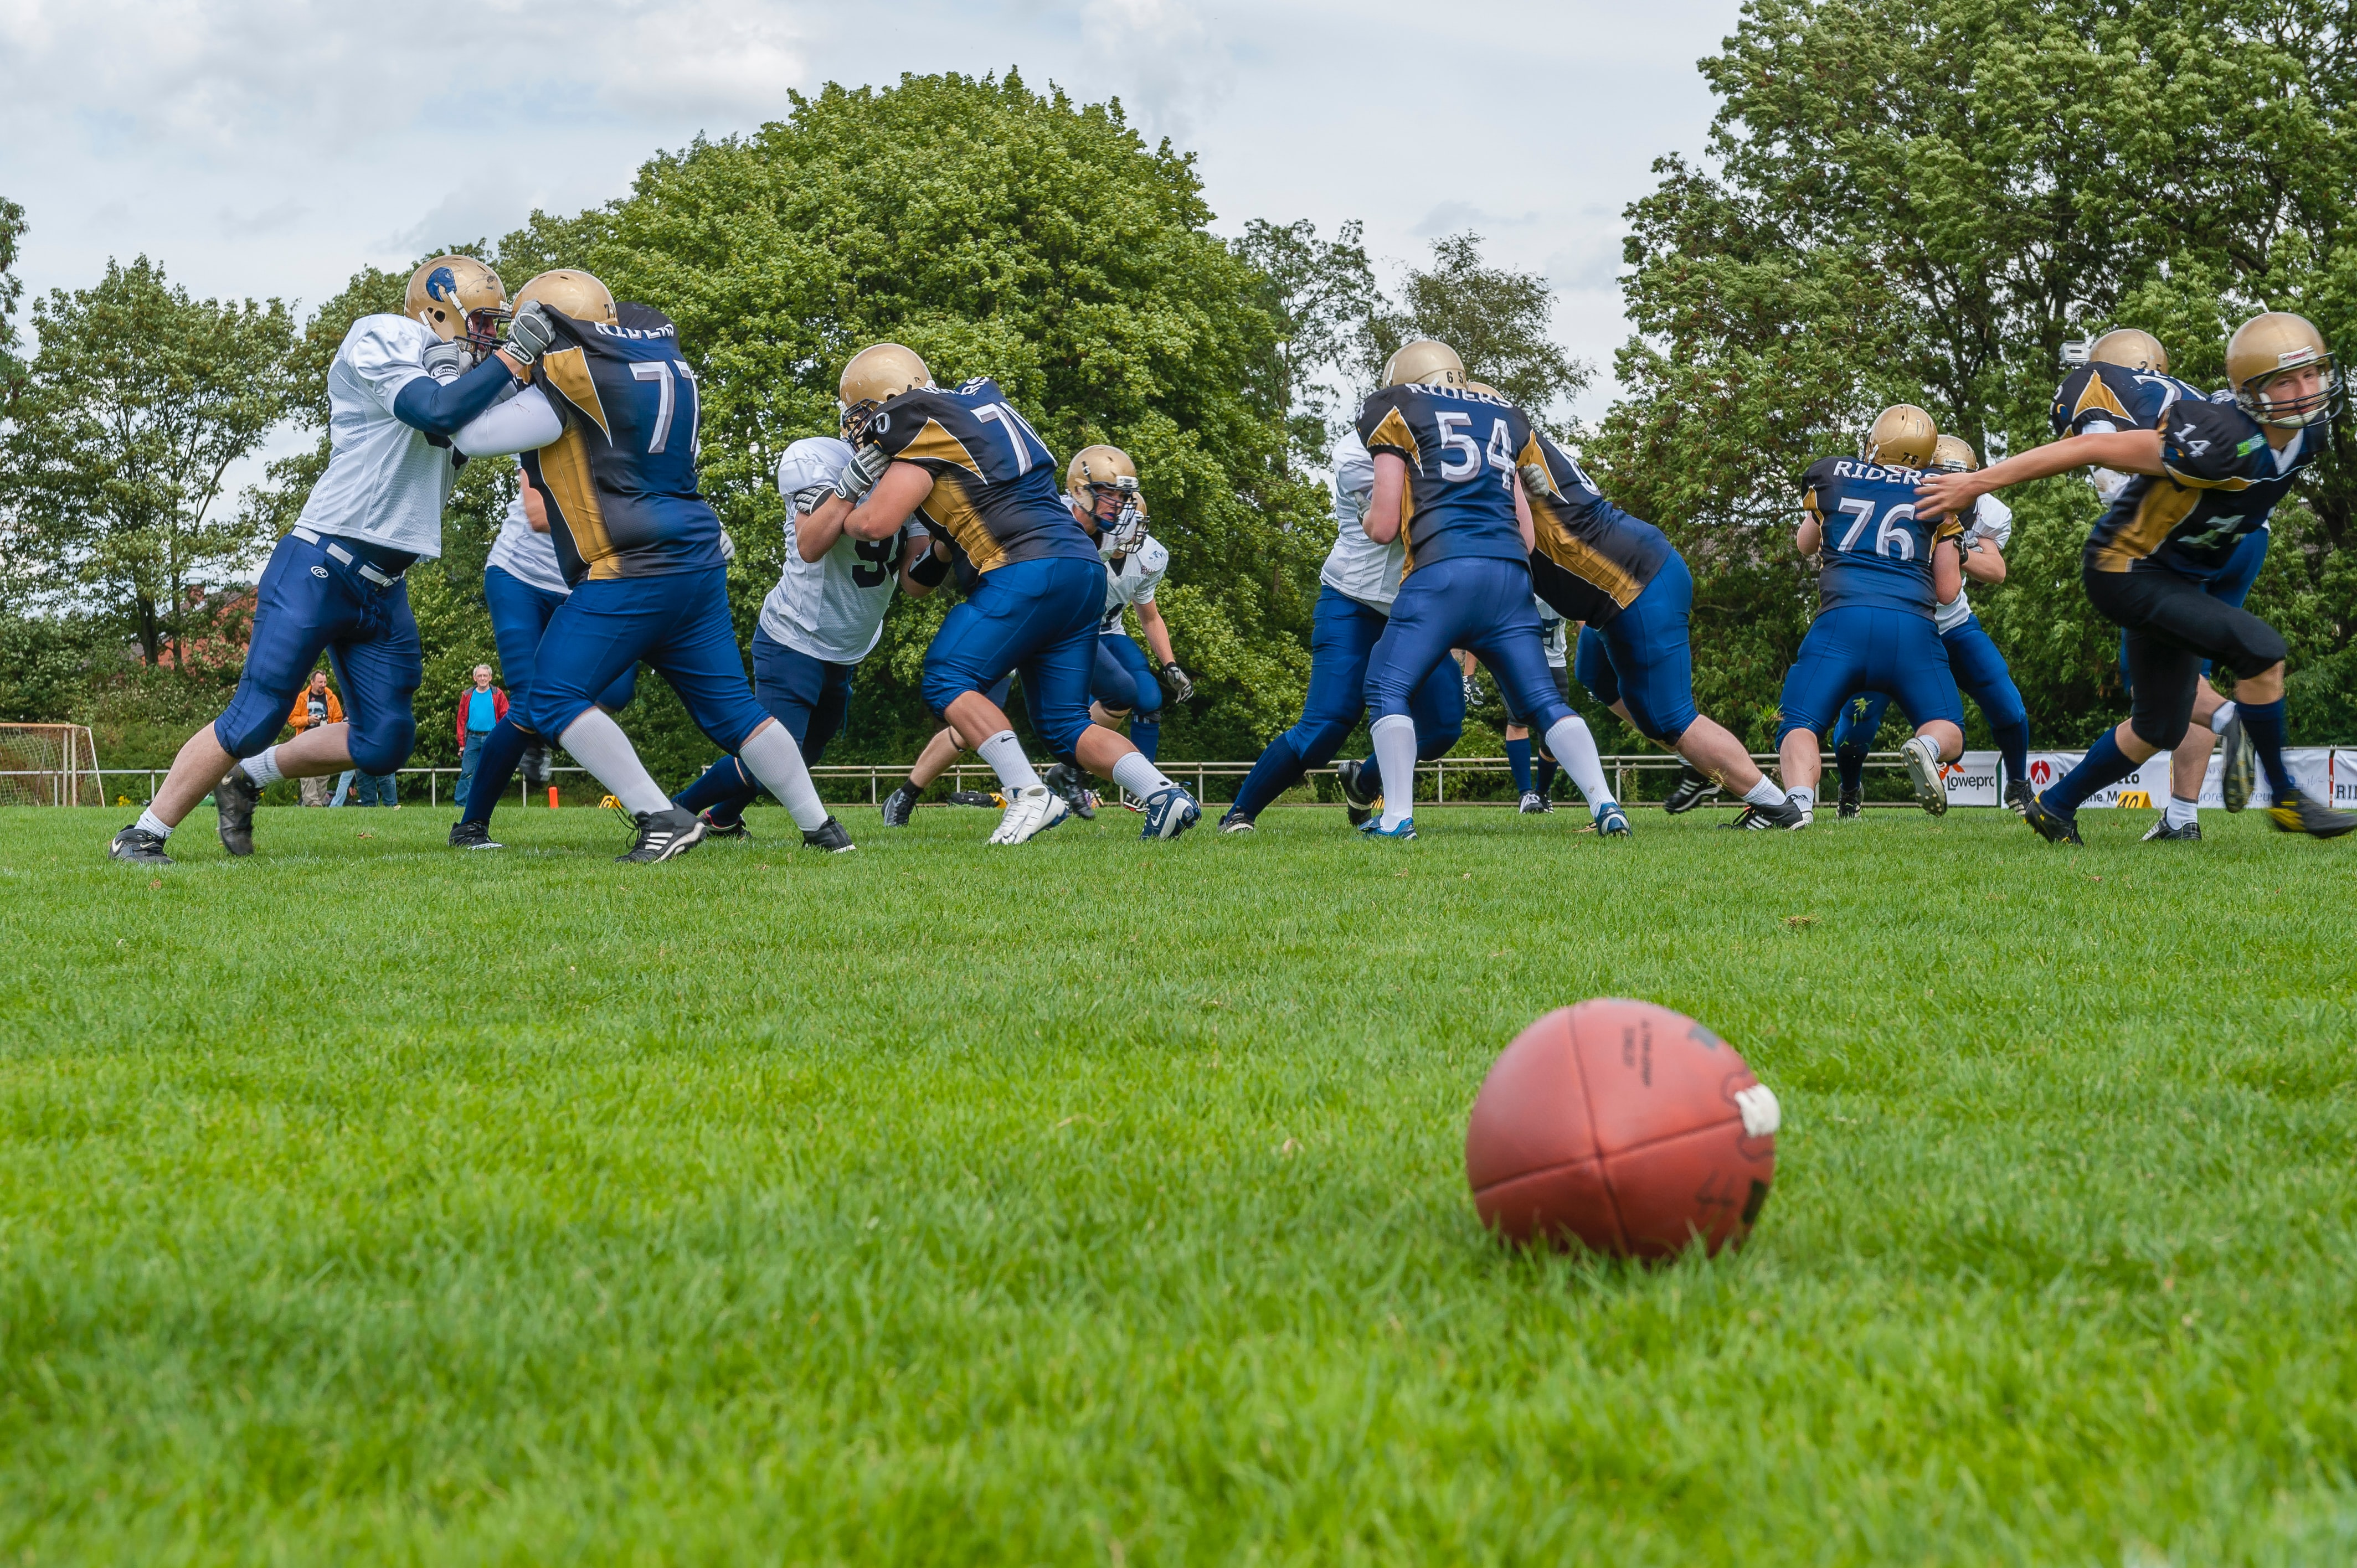 Athletes who are playing football game during COVID-19